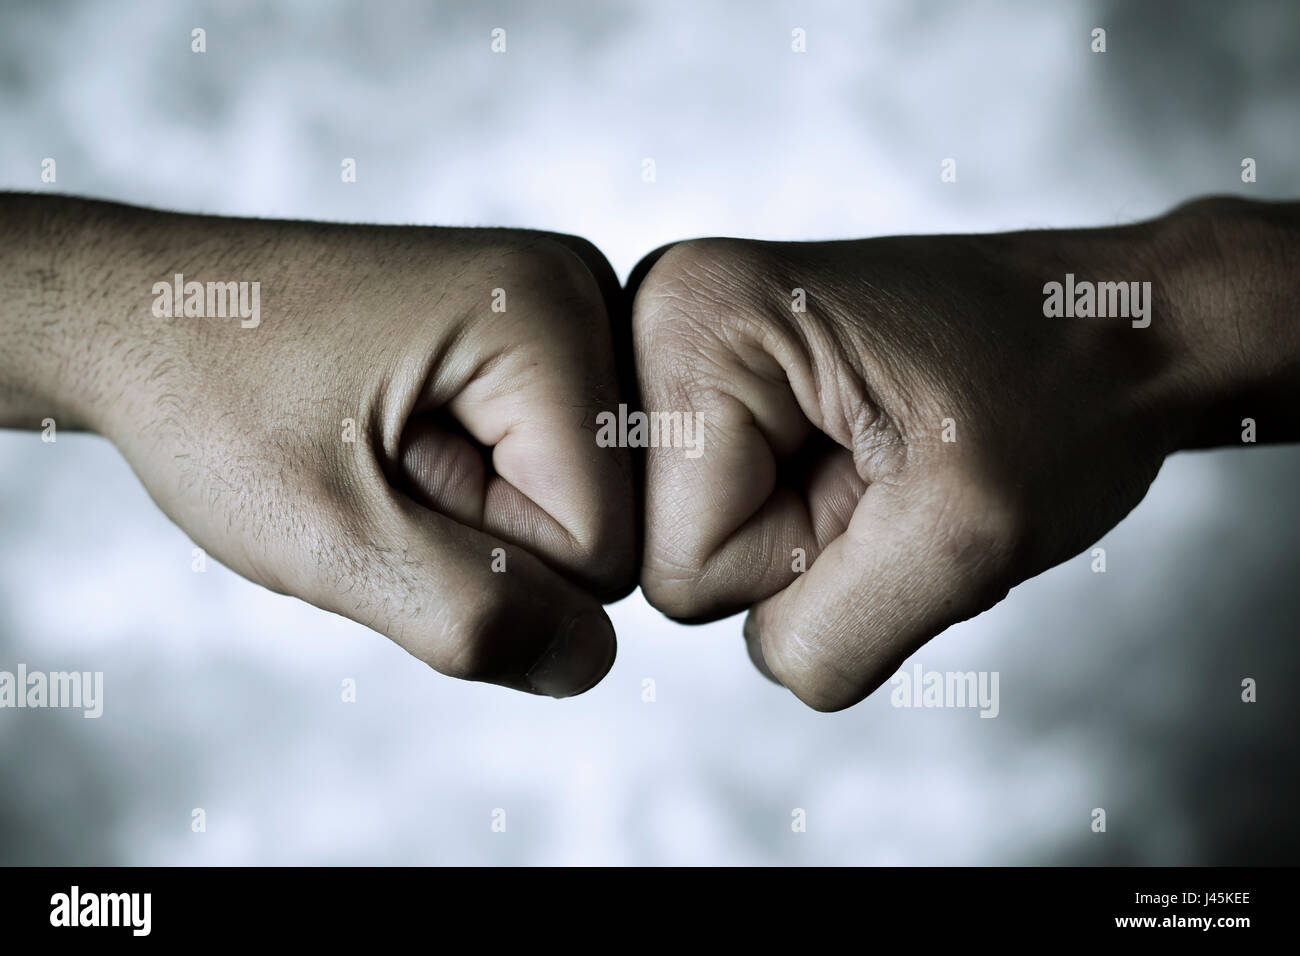 closeup of the hands of two young caucasian men who are bumping their fists - Stock Image